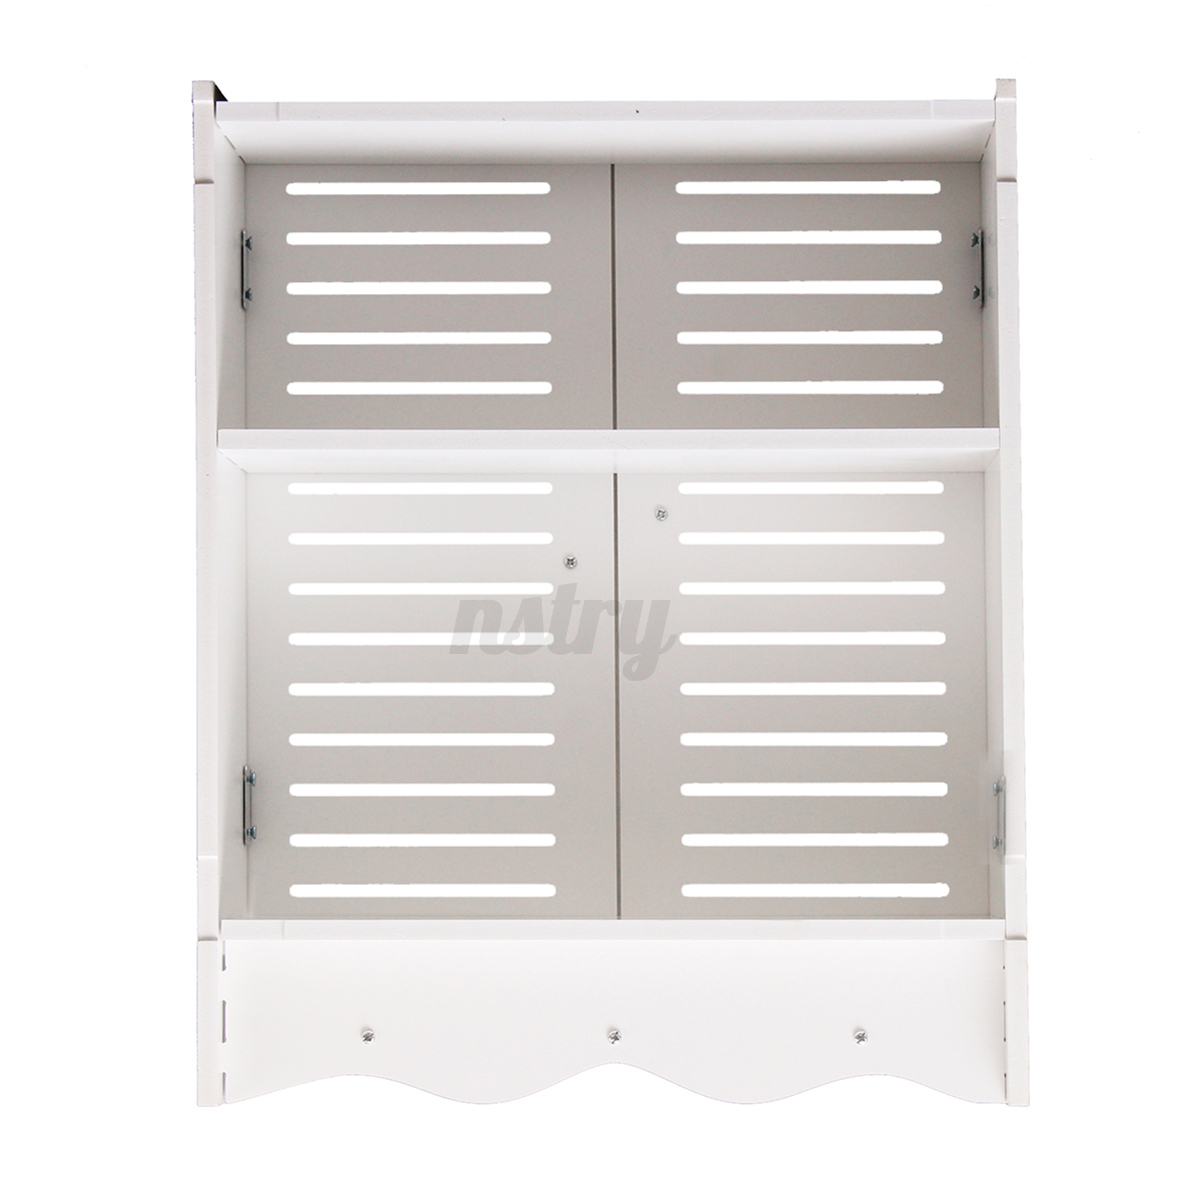 Bathroom cabinet wall mounted double shutter door storage for Bathroom cabinets ebay australia